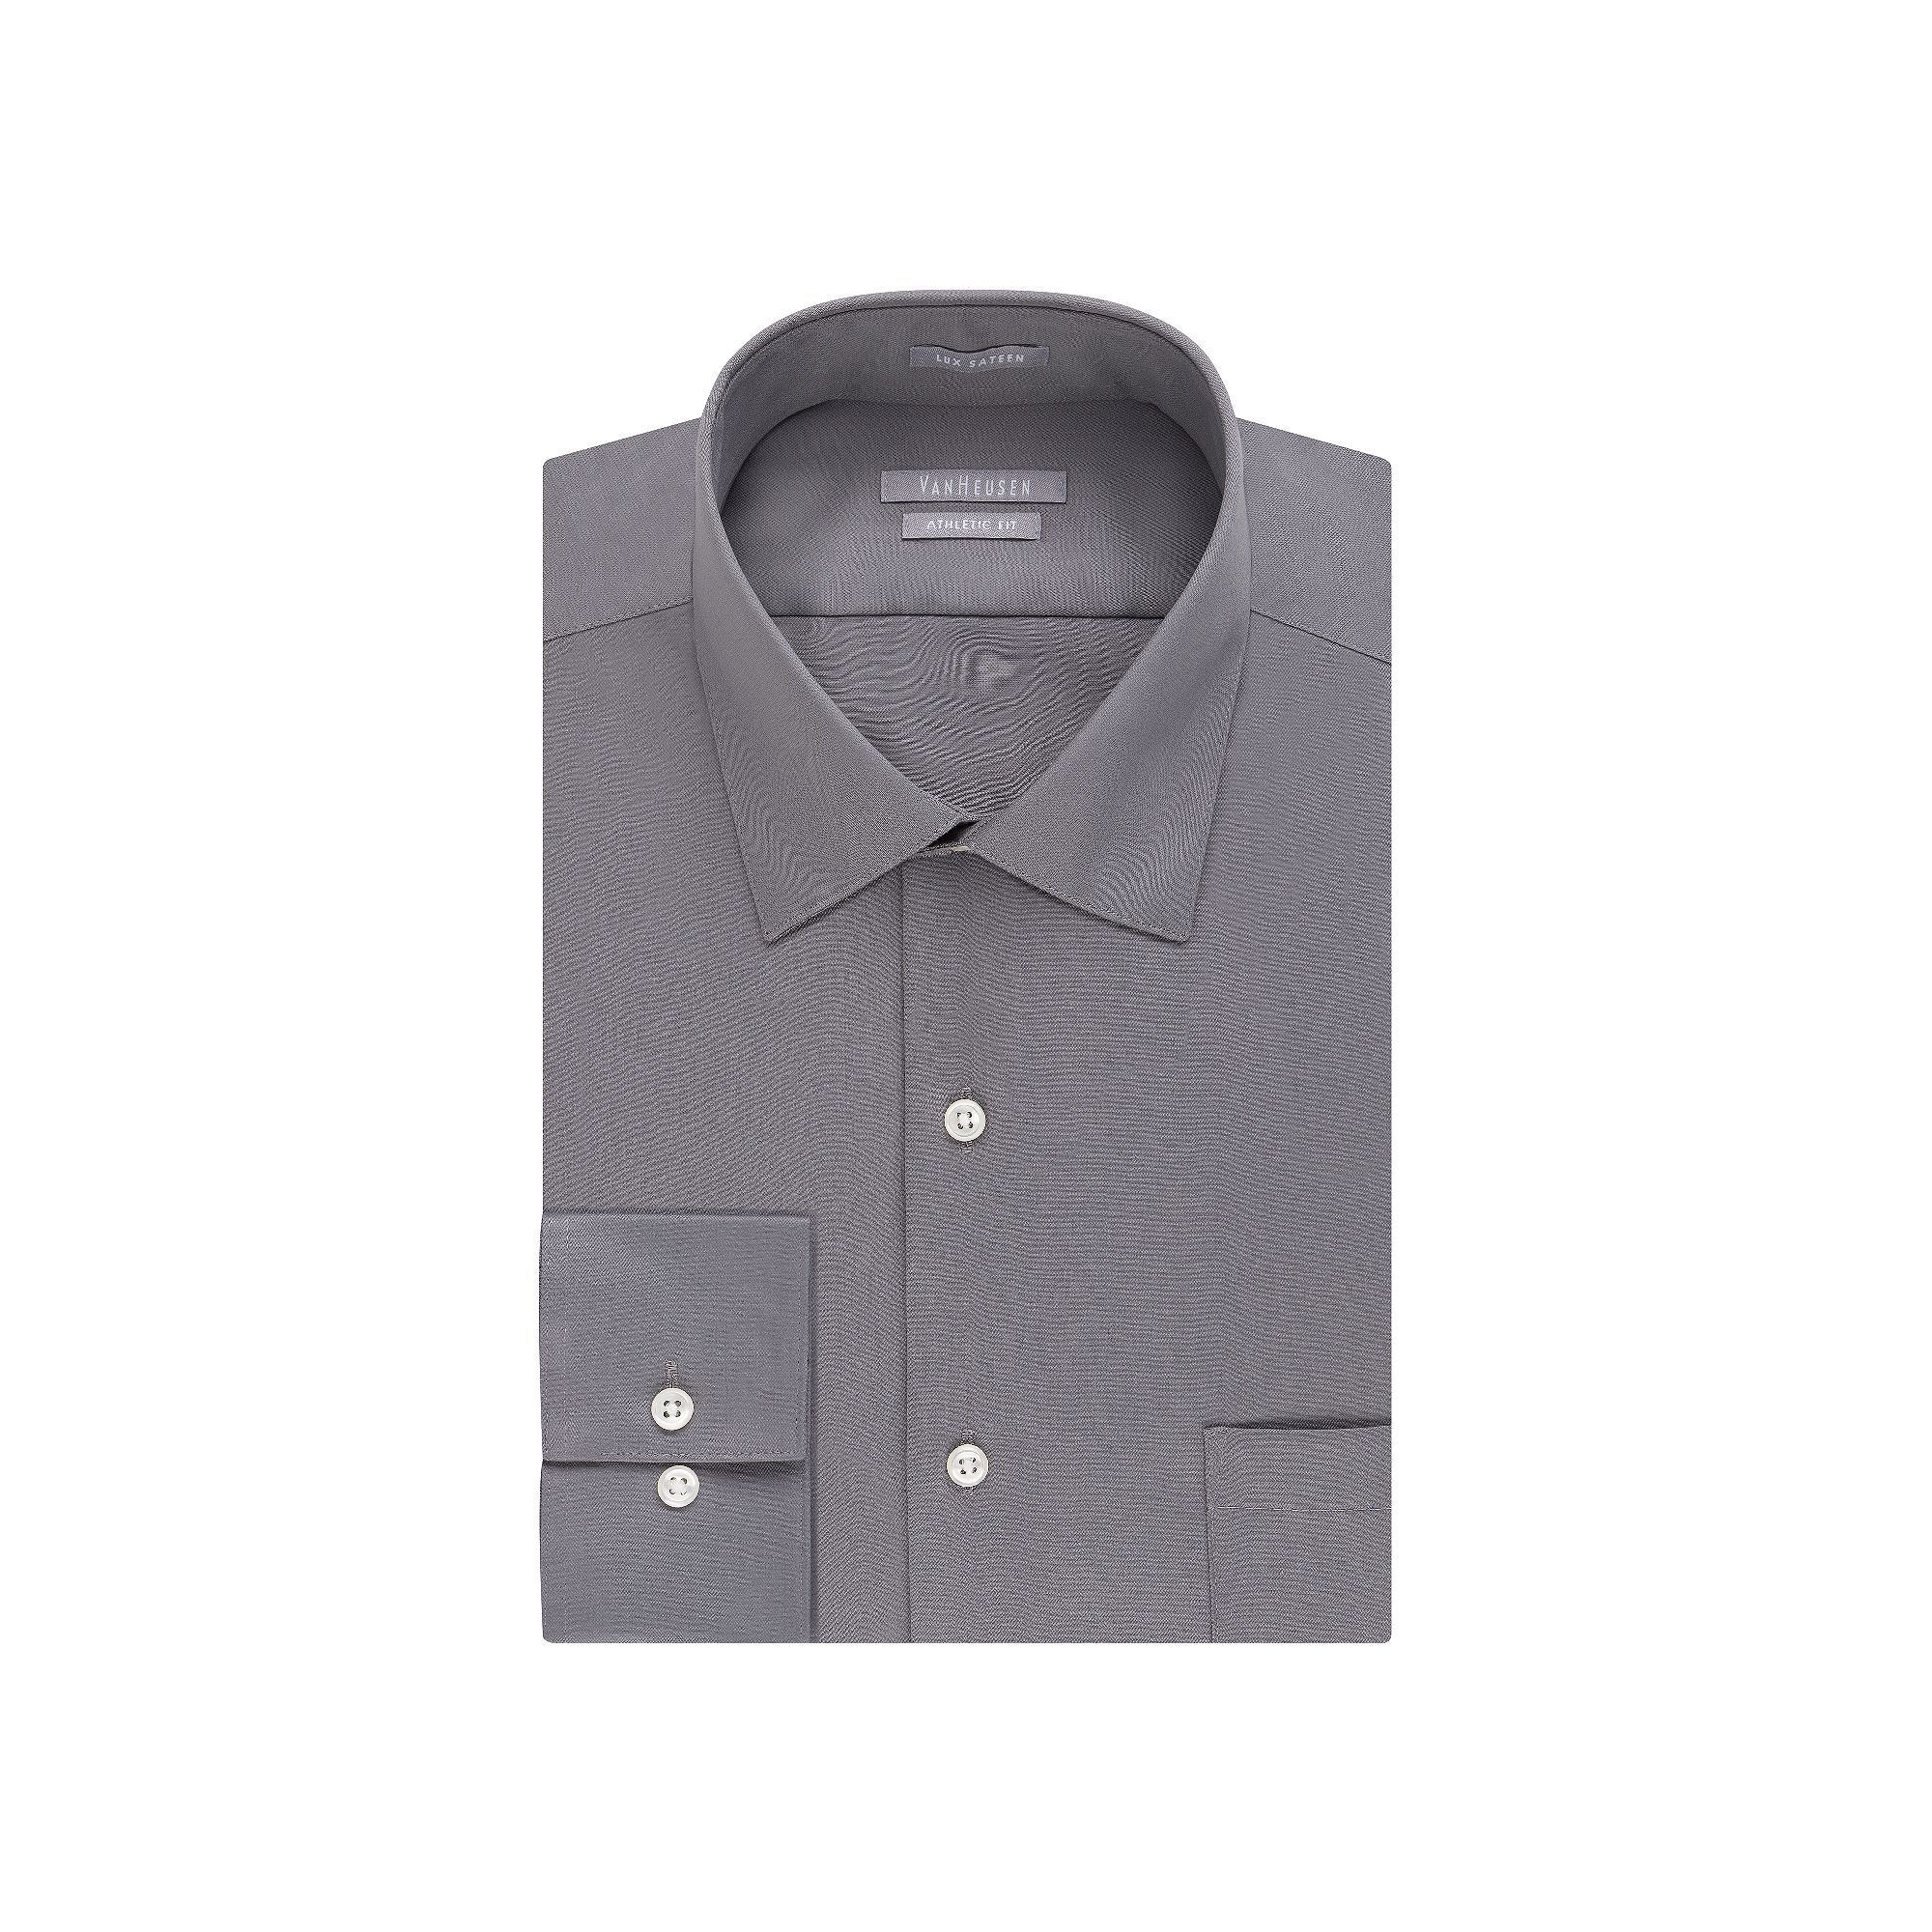 75276ff3636c2 Men's Van Heusen Fitted Athletic Solid Lux Sateen No Iron Spread Collar  Dress Shirt